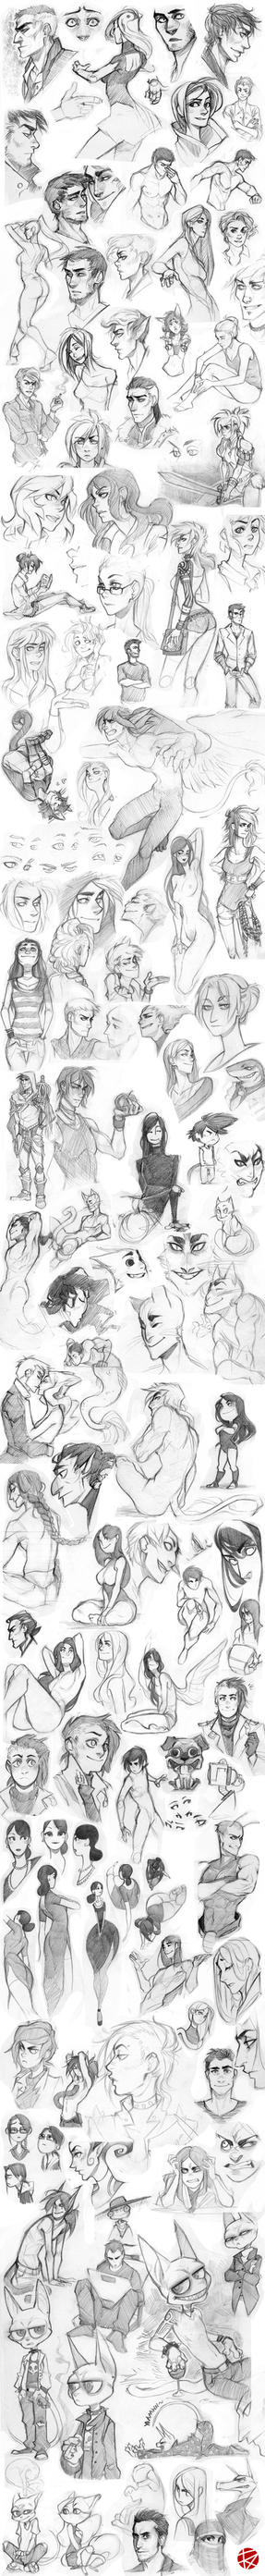 Sketch dump 01 by Rejuch